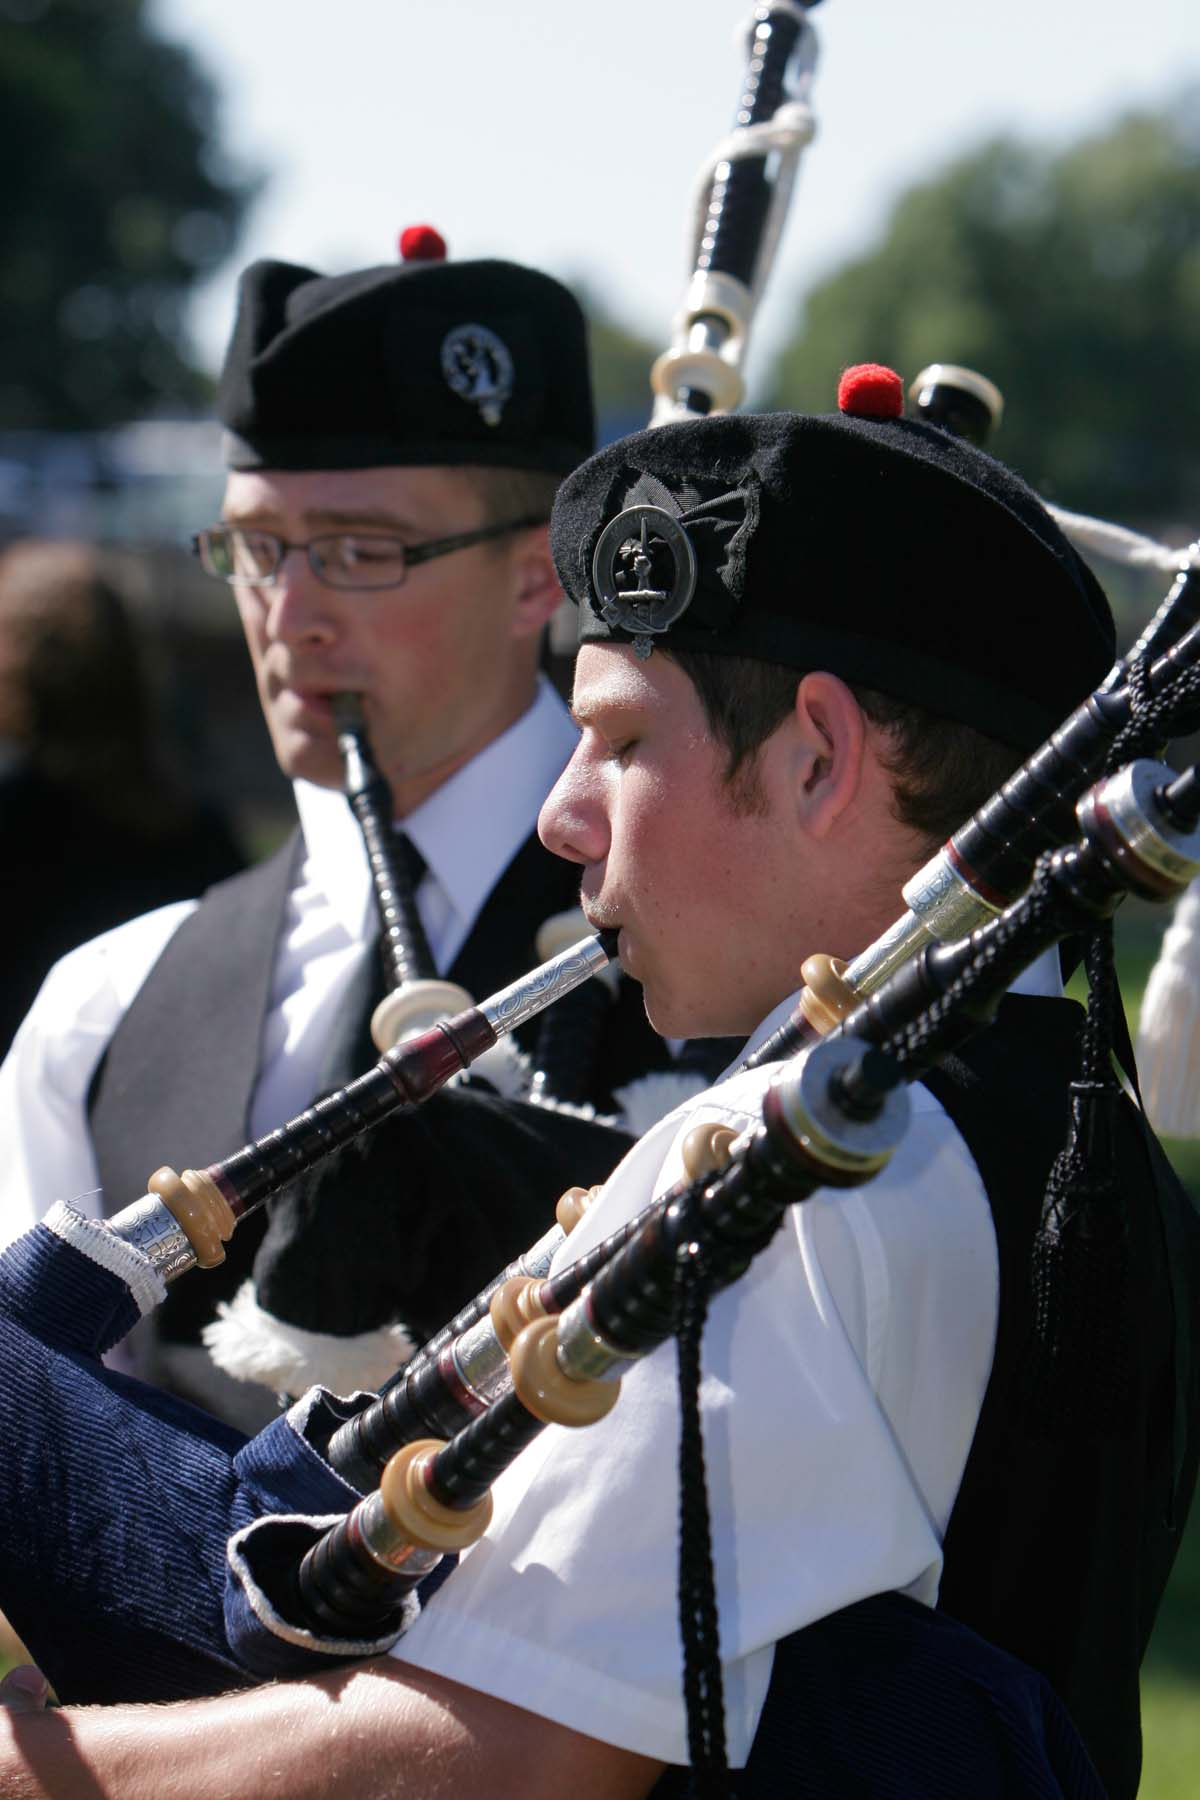 Men playing bagpipes.